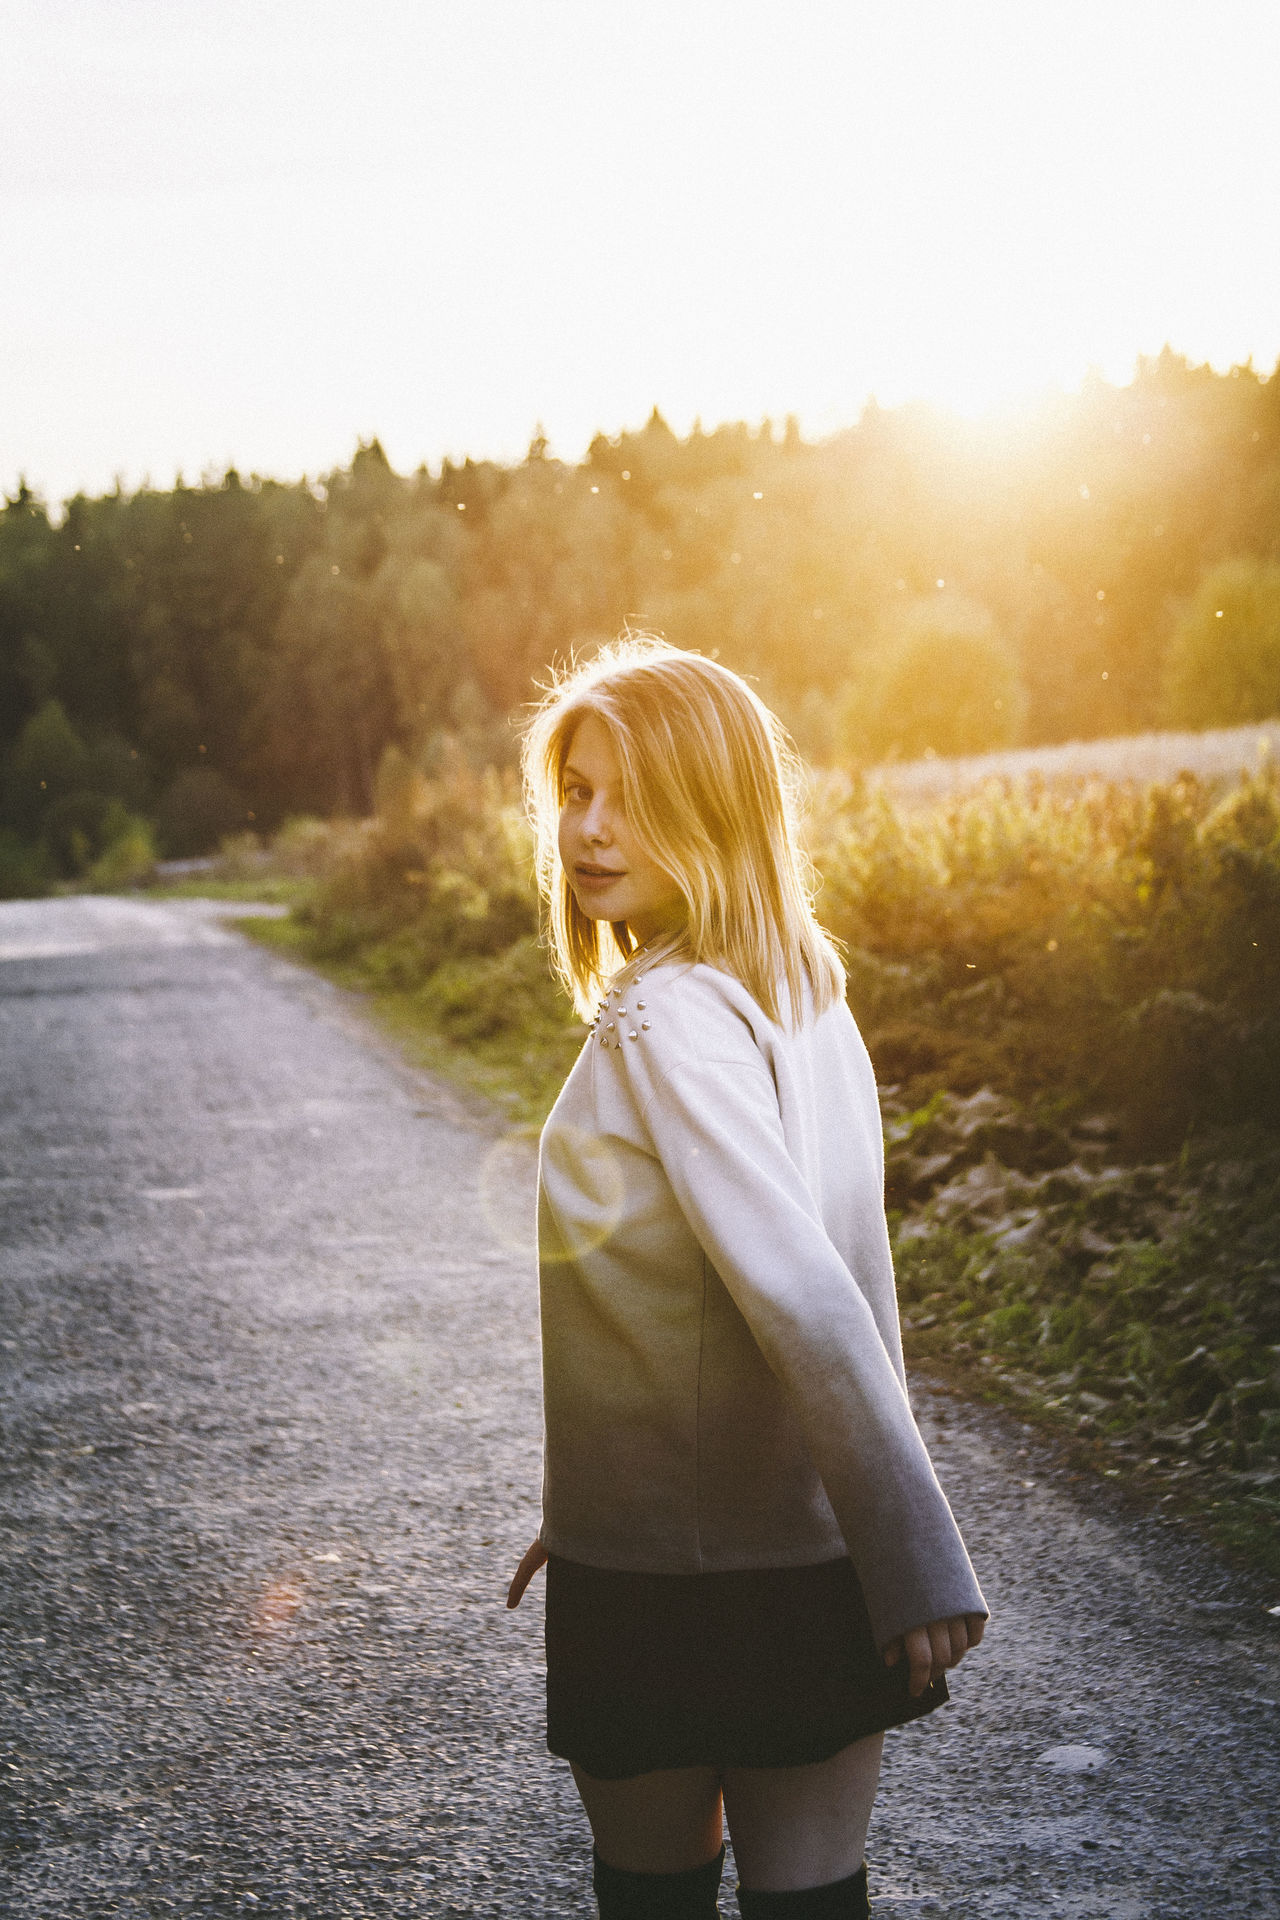 Beautiful stock photos of sonnenschein, rear view, real people, one person, lifestyles